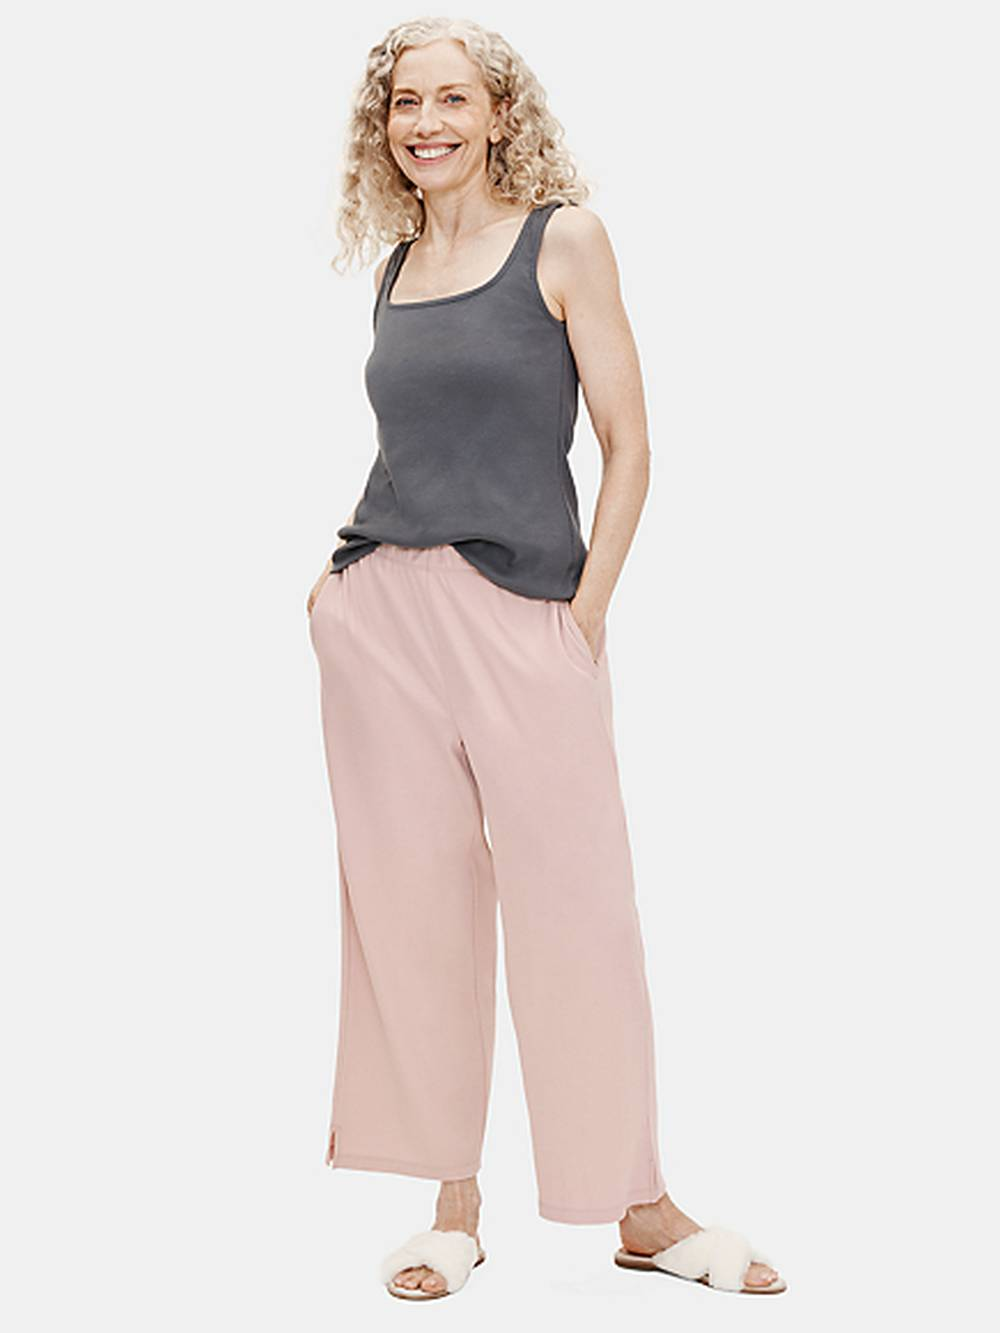 eileen fisher eco-friendly designer loungewear